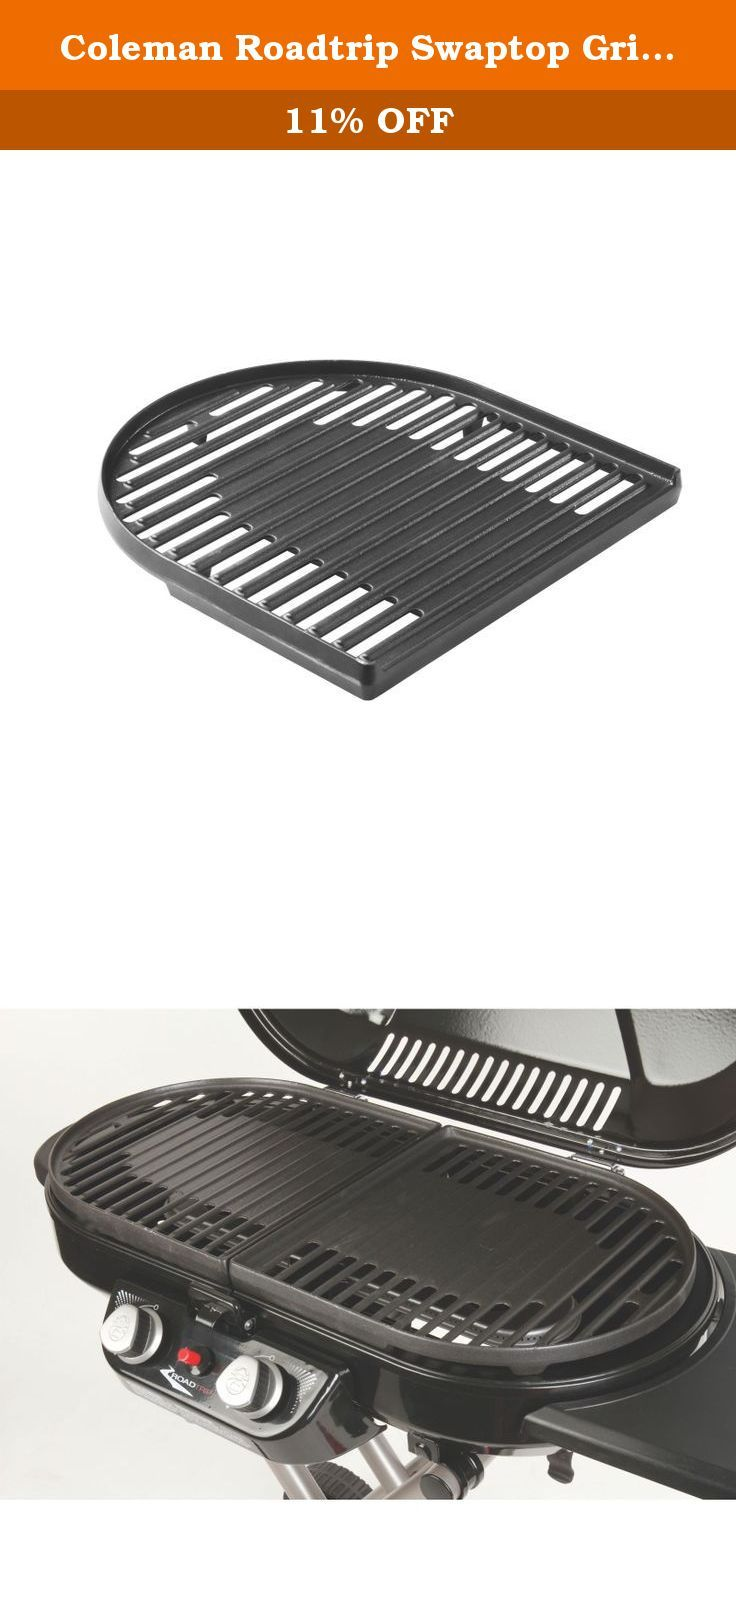 Coleman Roadtrip Swaptop Grill Grate. The Coleman Roadtrip Swaptop Grill Grate fits all LX family grills including 9941, 9944, and 9949 models. Made from porcelain coated cast iron construction this grill grate will last you a very long time. Easily swaps out with other grill grate accessories, and is also easy to clean. A much needed grilling accessory for your next roadtrip.